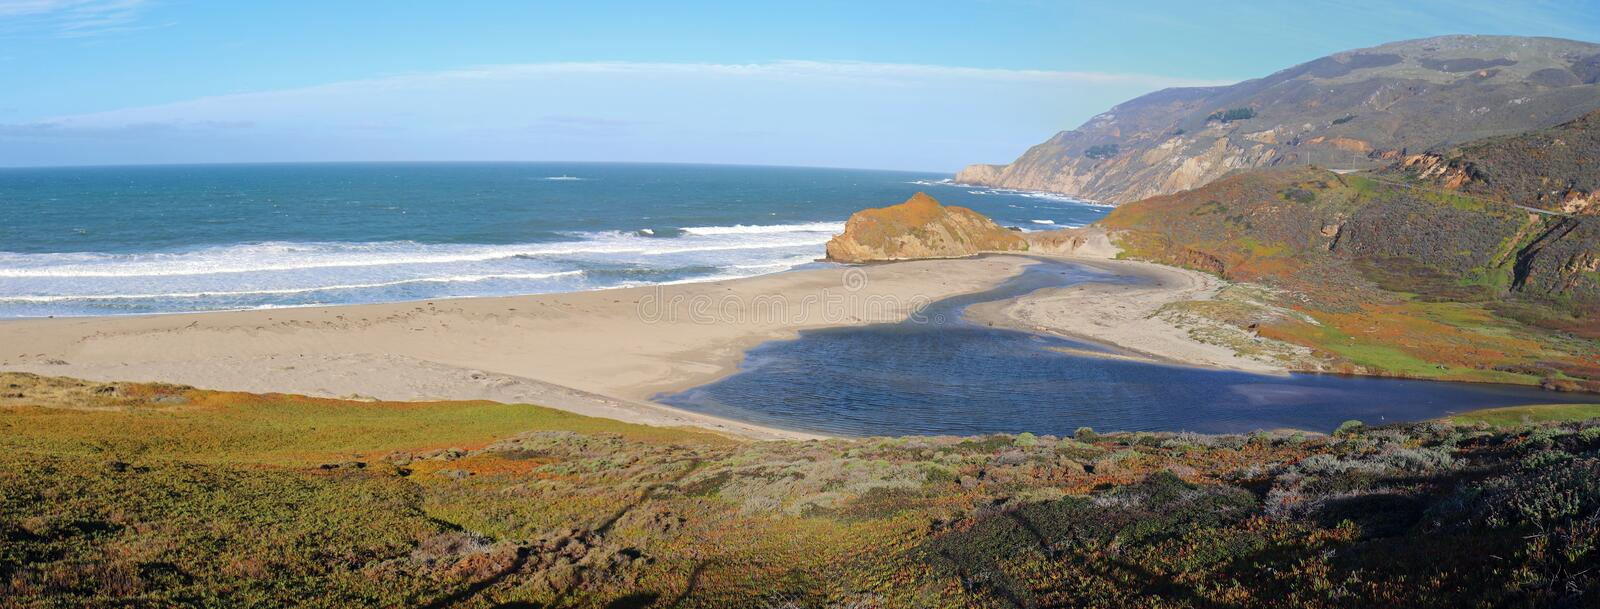 Mouth of the Little Sur river where it meets the Pacific Ocean at Point Sur on the Central California coast - USA. Mouth of the Little Sur river where it meets royalty free stock photo